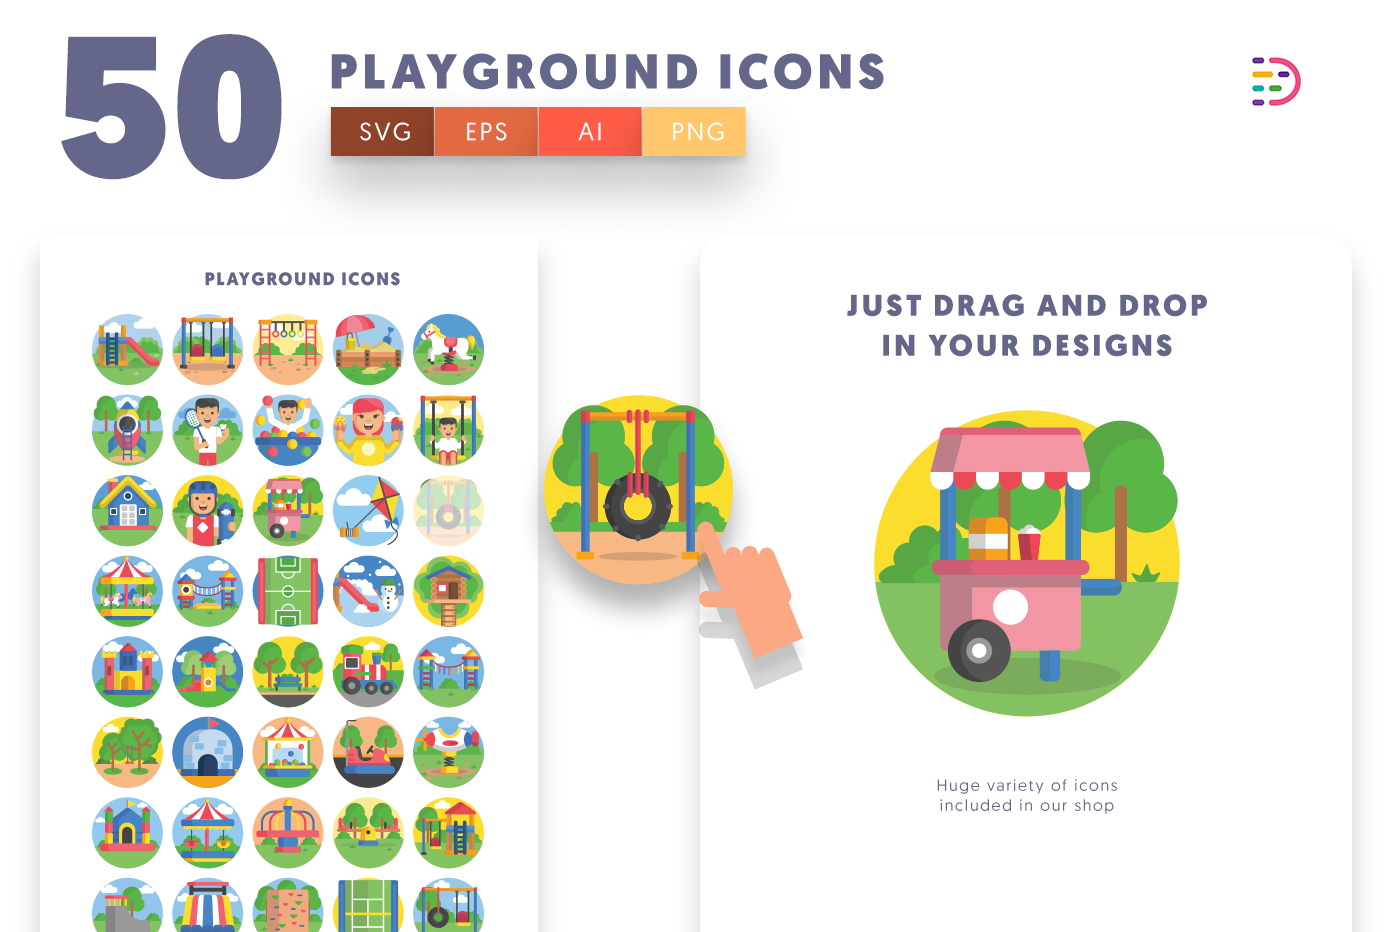 Drag and drop vector 50 Playground Icons